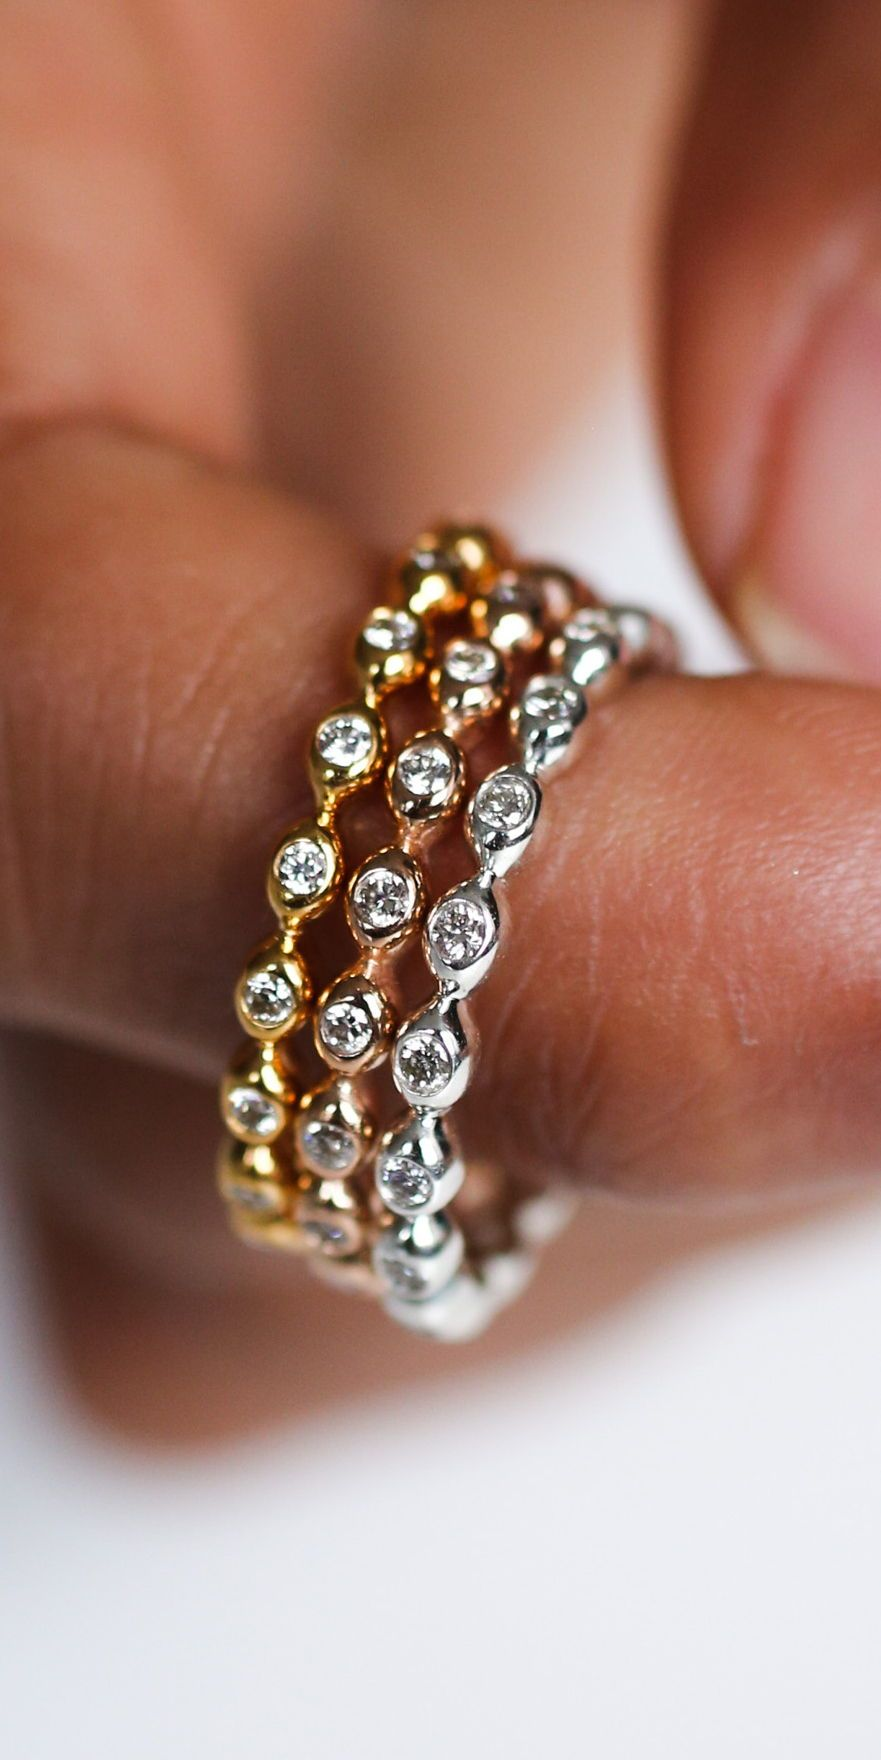 The Halo Drop Ring Diamonds studded in molten drops of